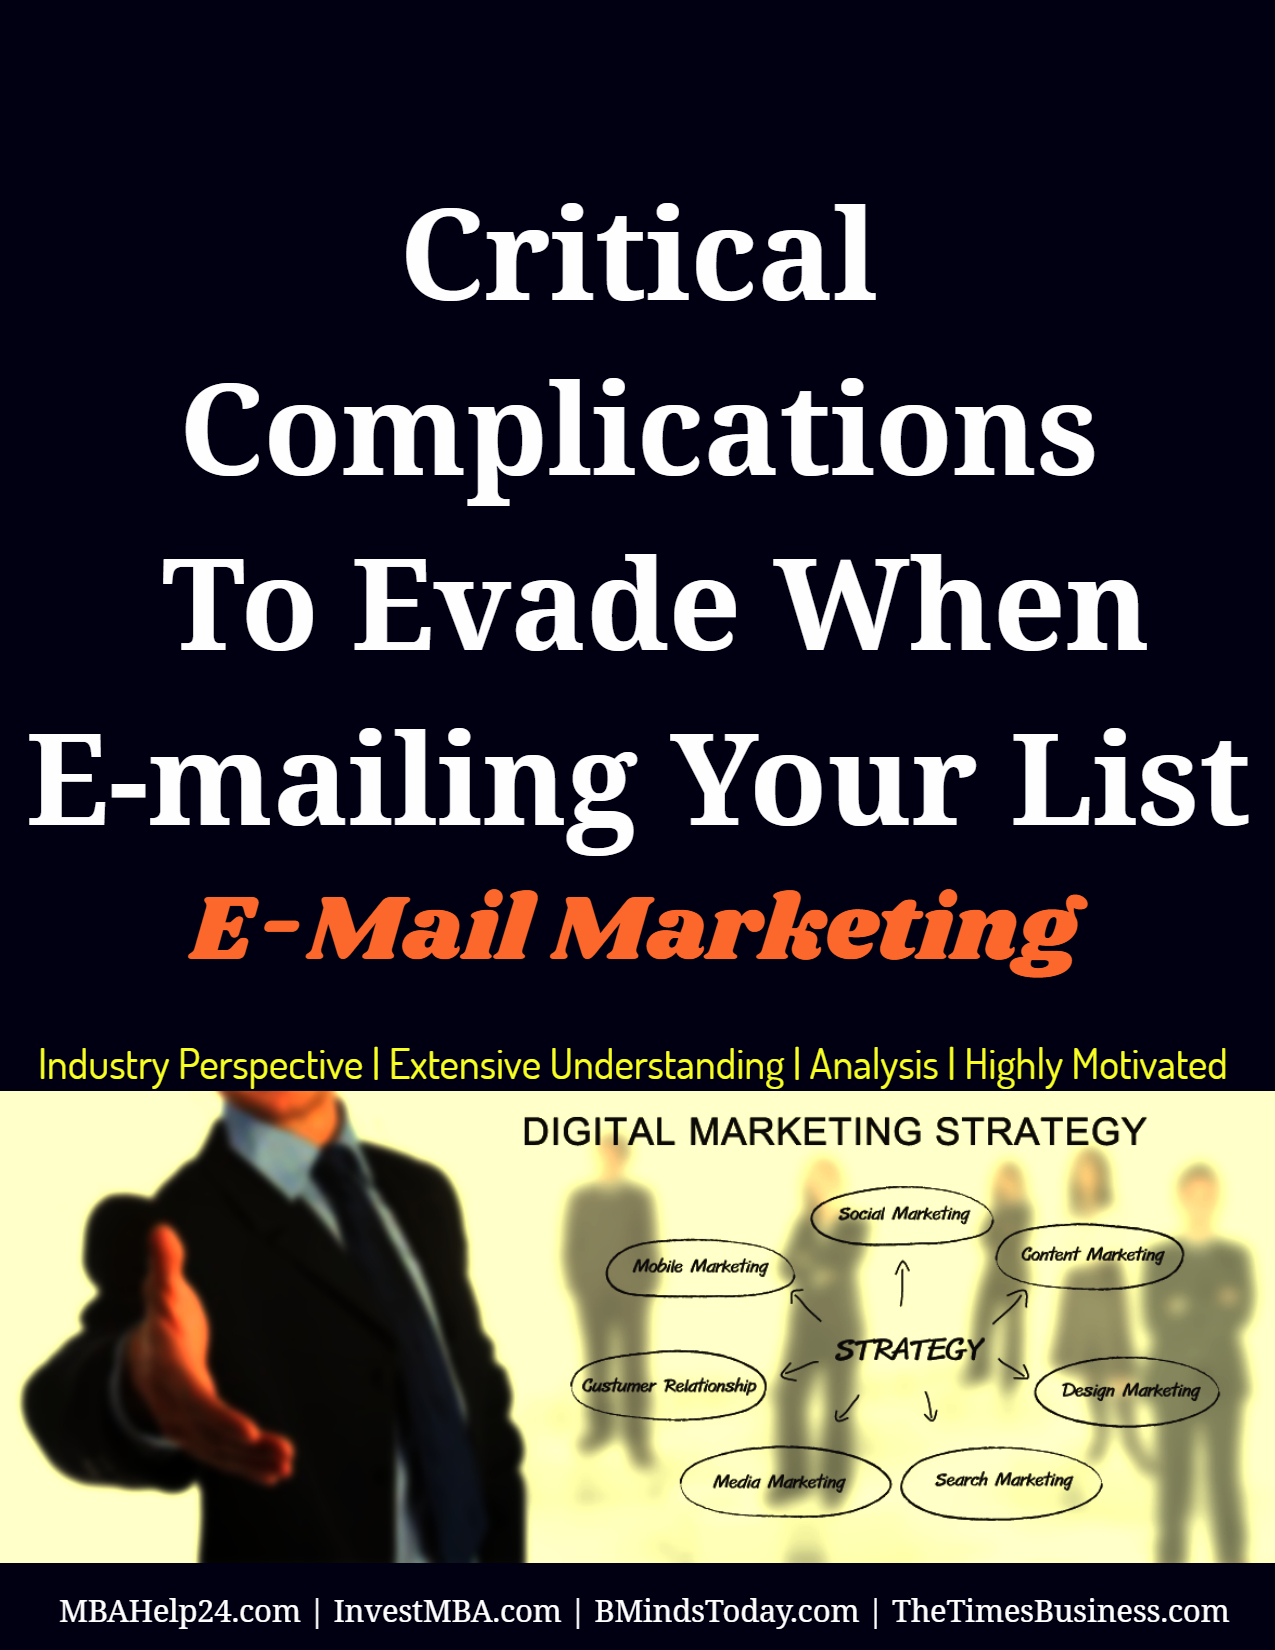 Critical Complications To Evade When E-mailing Your List | E-Mail Marketing e-mail Critical Complications To Evade When E-mailing Your List | E-Mail Marketing Critical Complications To Evade When E mailing Your List E Mail Marketing